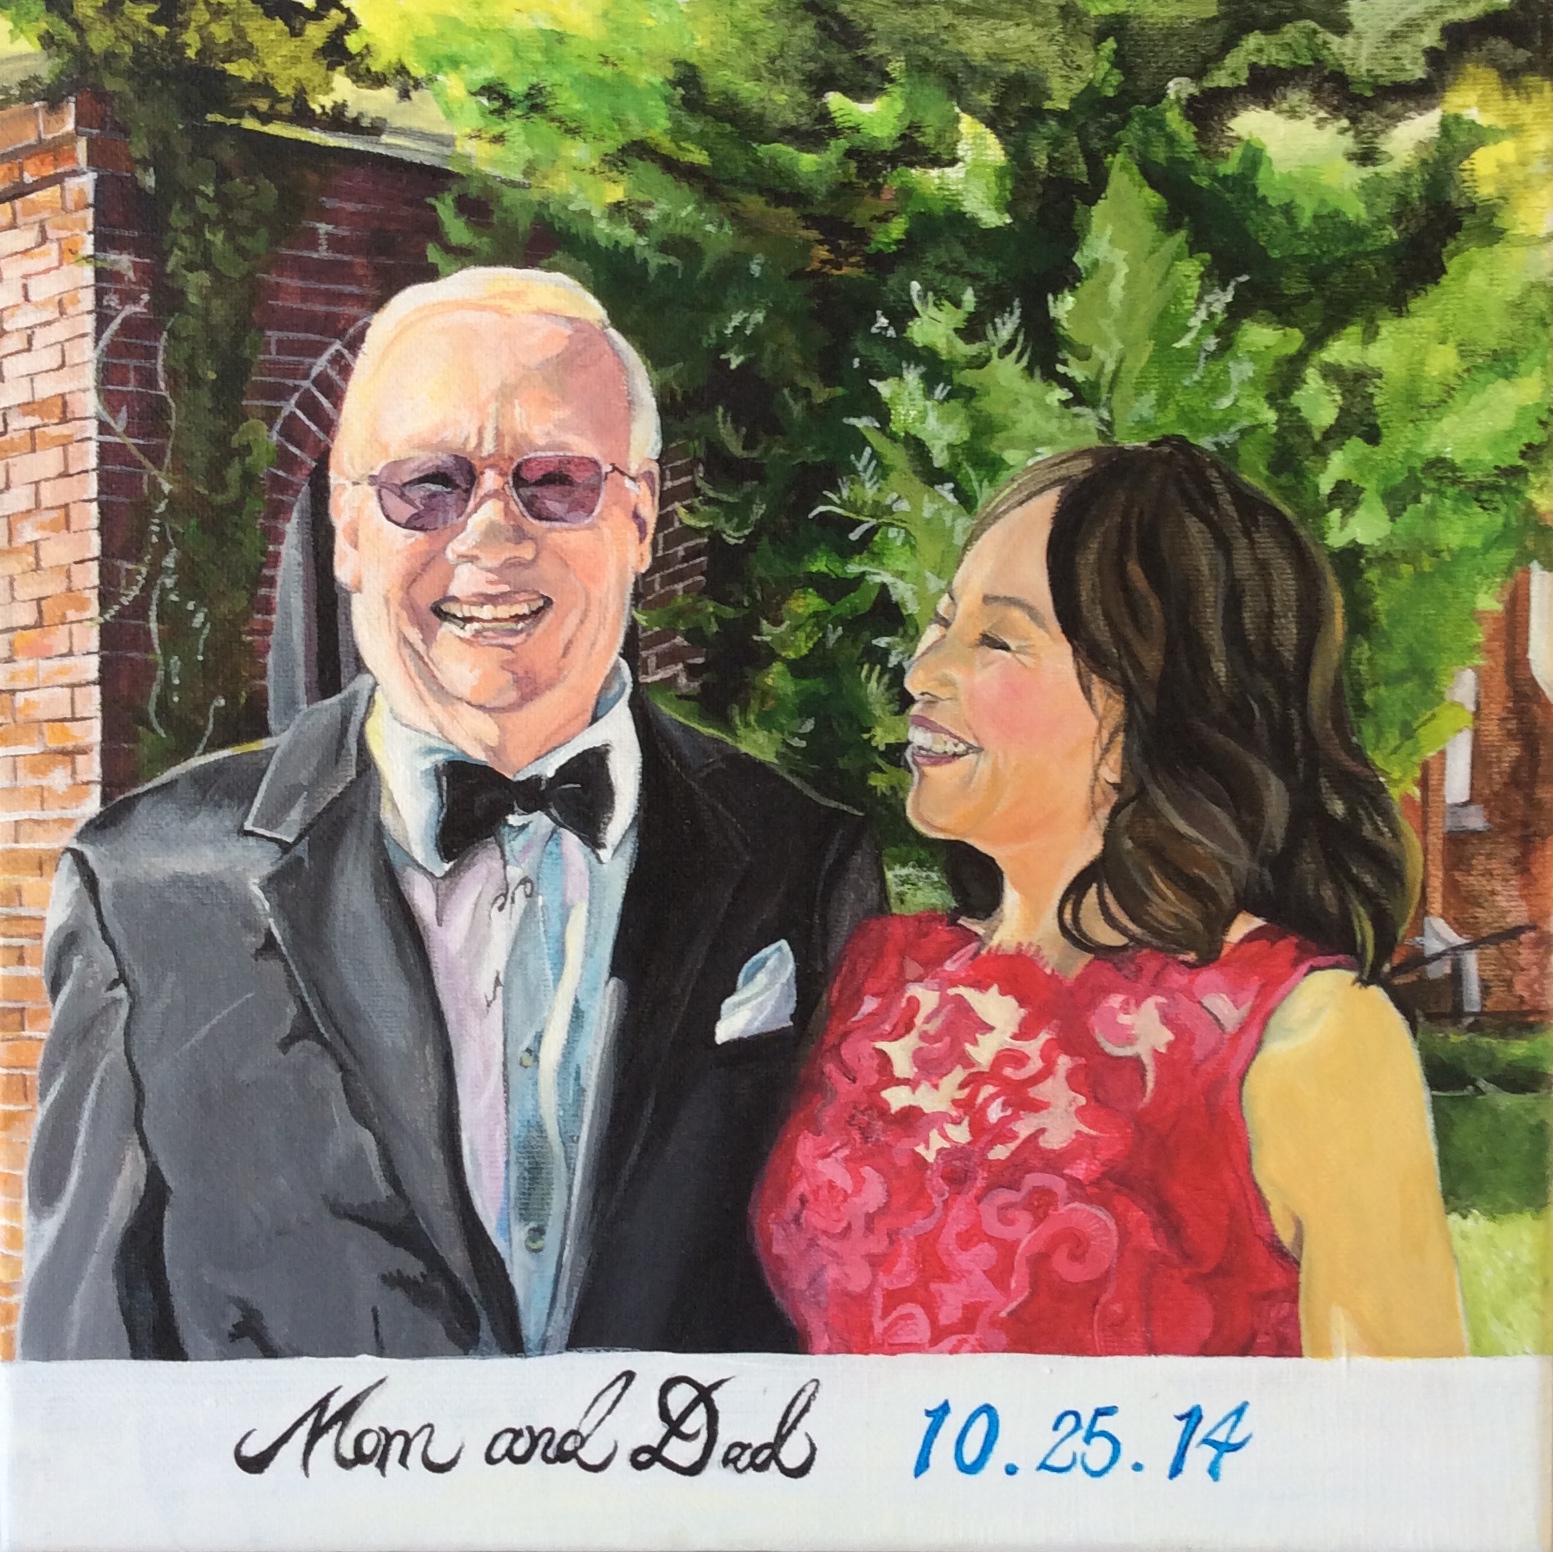 My Mom and Dad on my wedding day (I painted this in Dec 2014 as my Christmas gift to them)